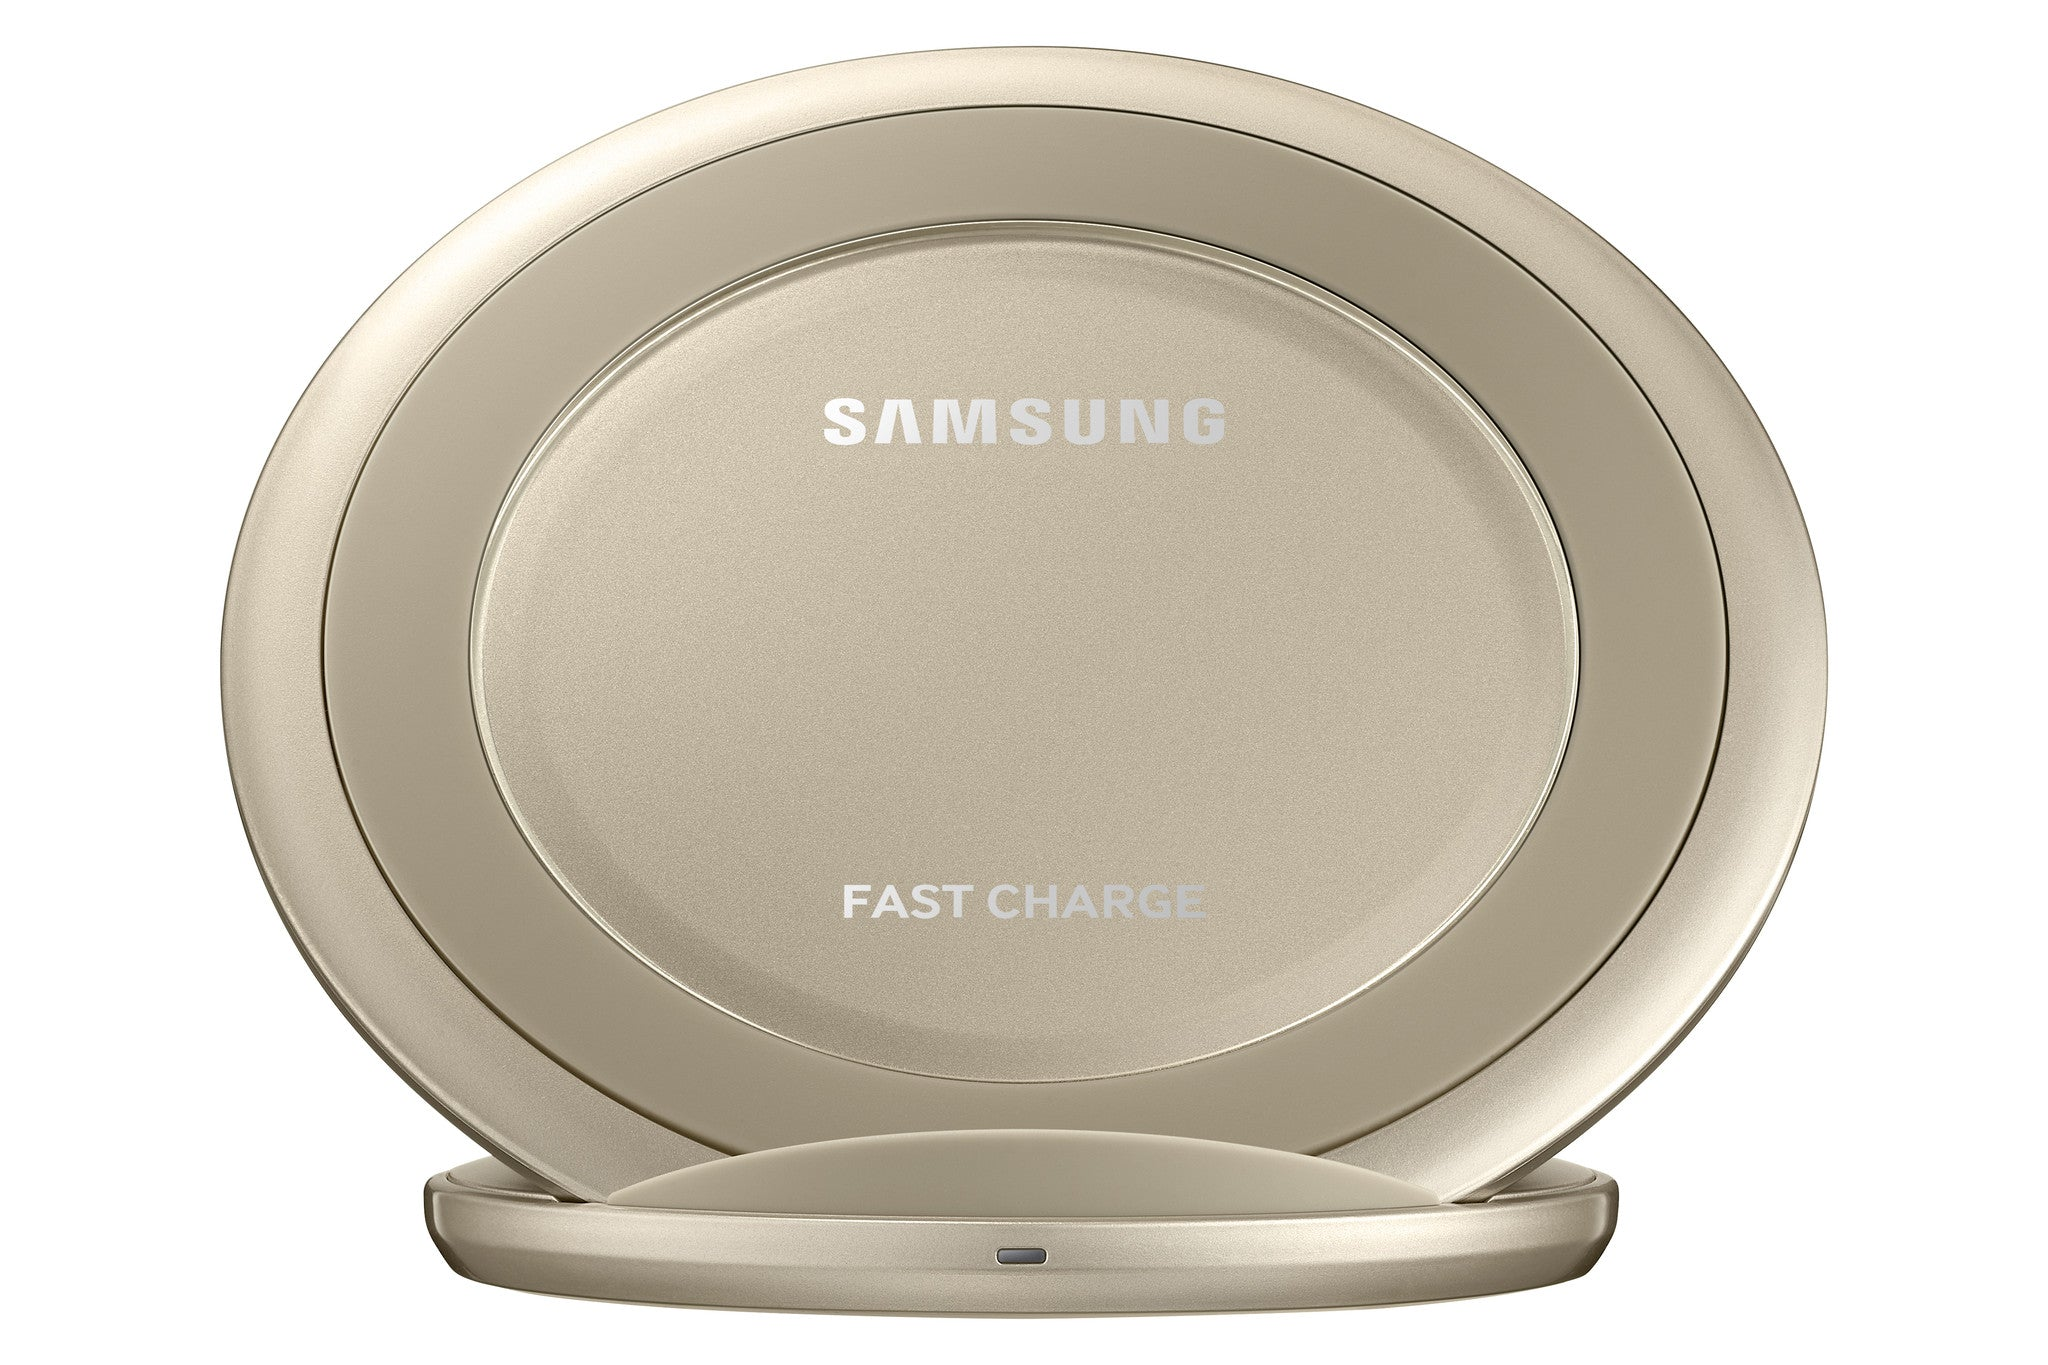 chargeur samsung induction stand fast charging gold maison de l 39 accessoire. Black Bedroom Furniture Sets. Home Design Ideas